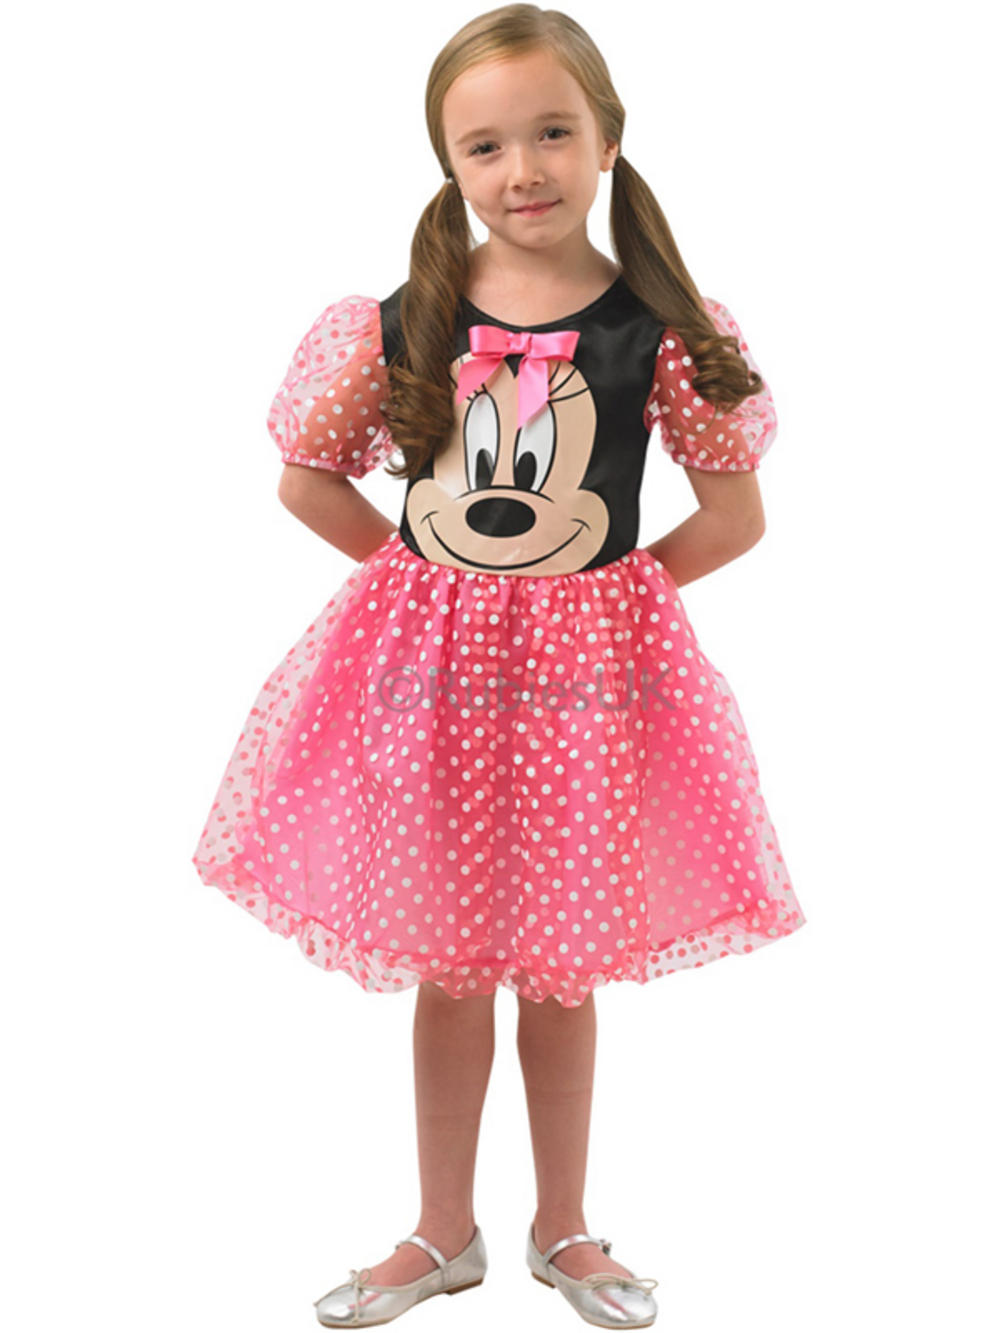 Our Minnie Mouse Disney Costume will instantly transform you into Mickey's stylish other half. This official Disney Costume perfectly captures Minnie's iconic spotted ensemble. The Minnie Mouse outfit includes a gorgeous spotty dress with puff sleeves, satin skirt and embroidered button detail.5/5(2).